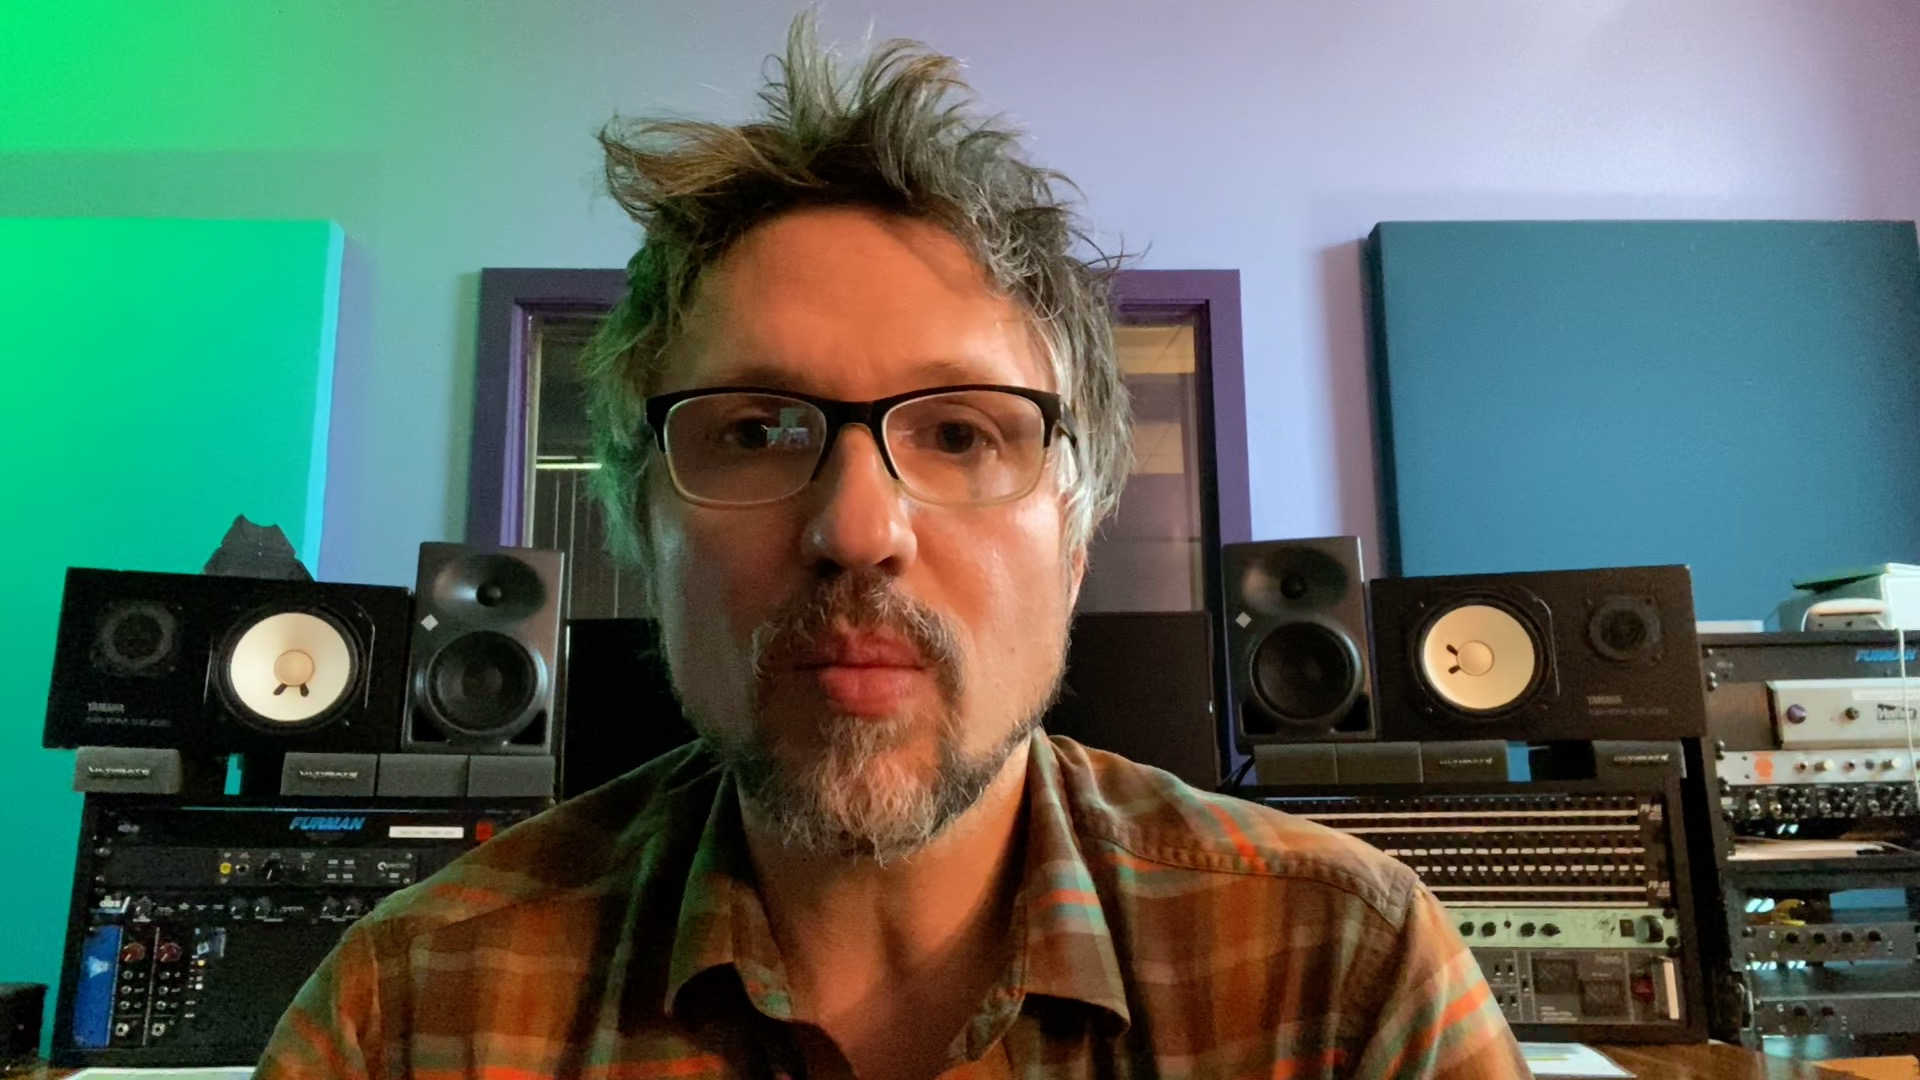 Why I'm Closing the Recording Studio – Vlog